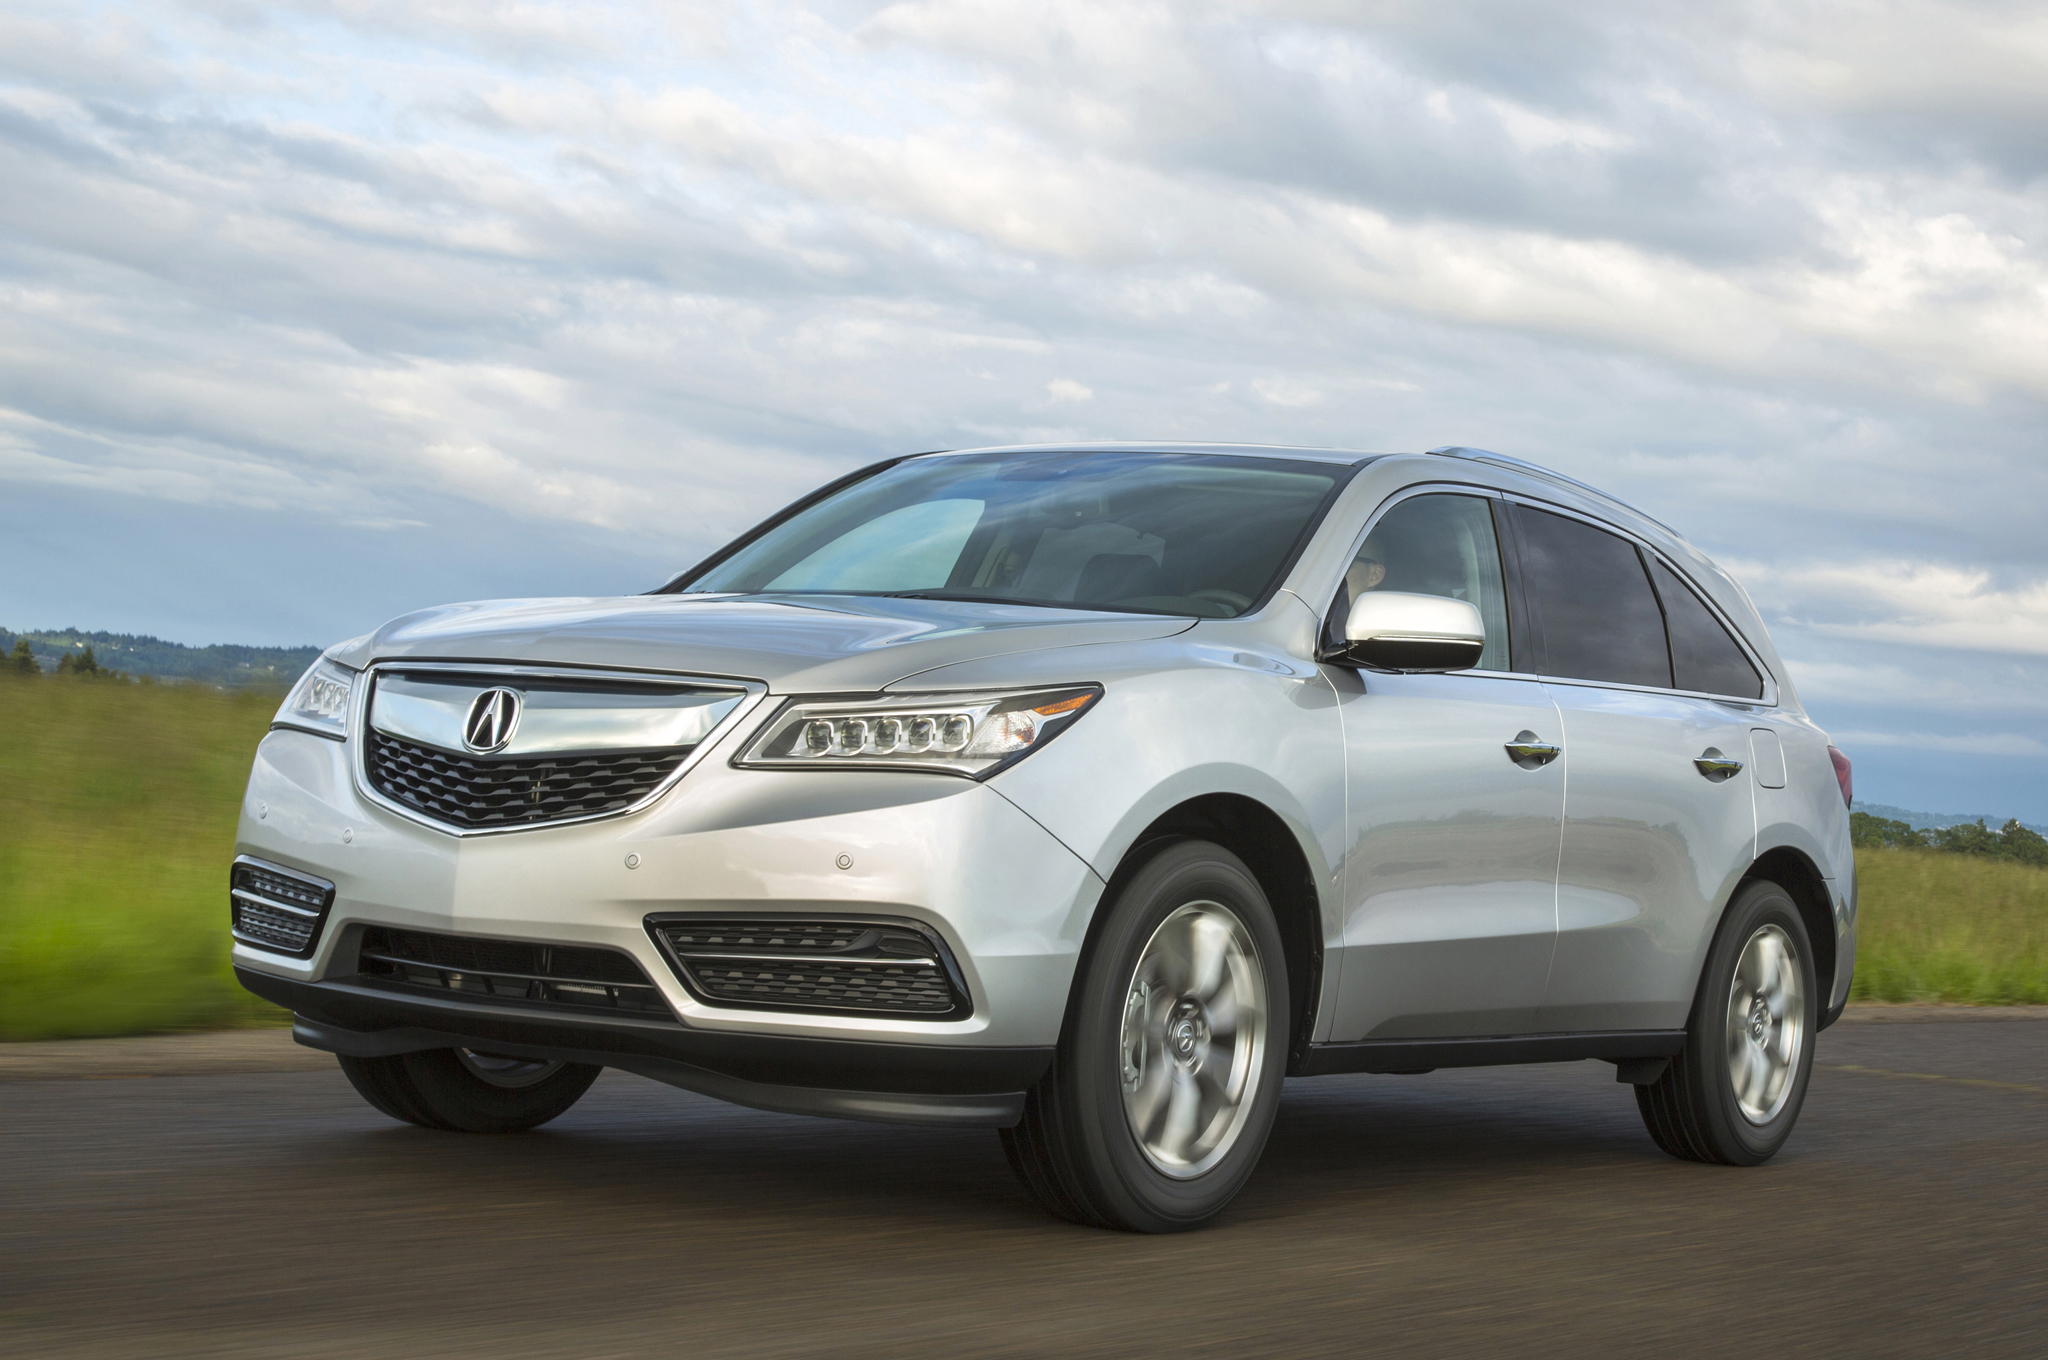 Acura MDX Front Three Quarter In Motion 02 Free Download Image Of